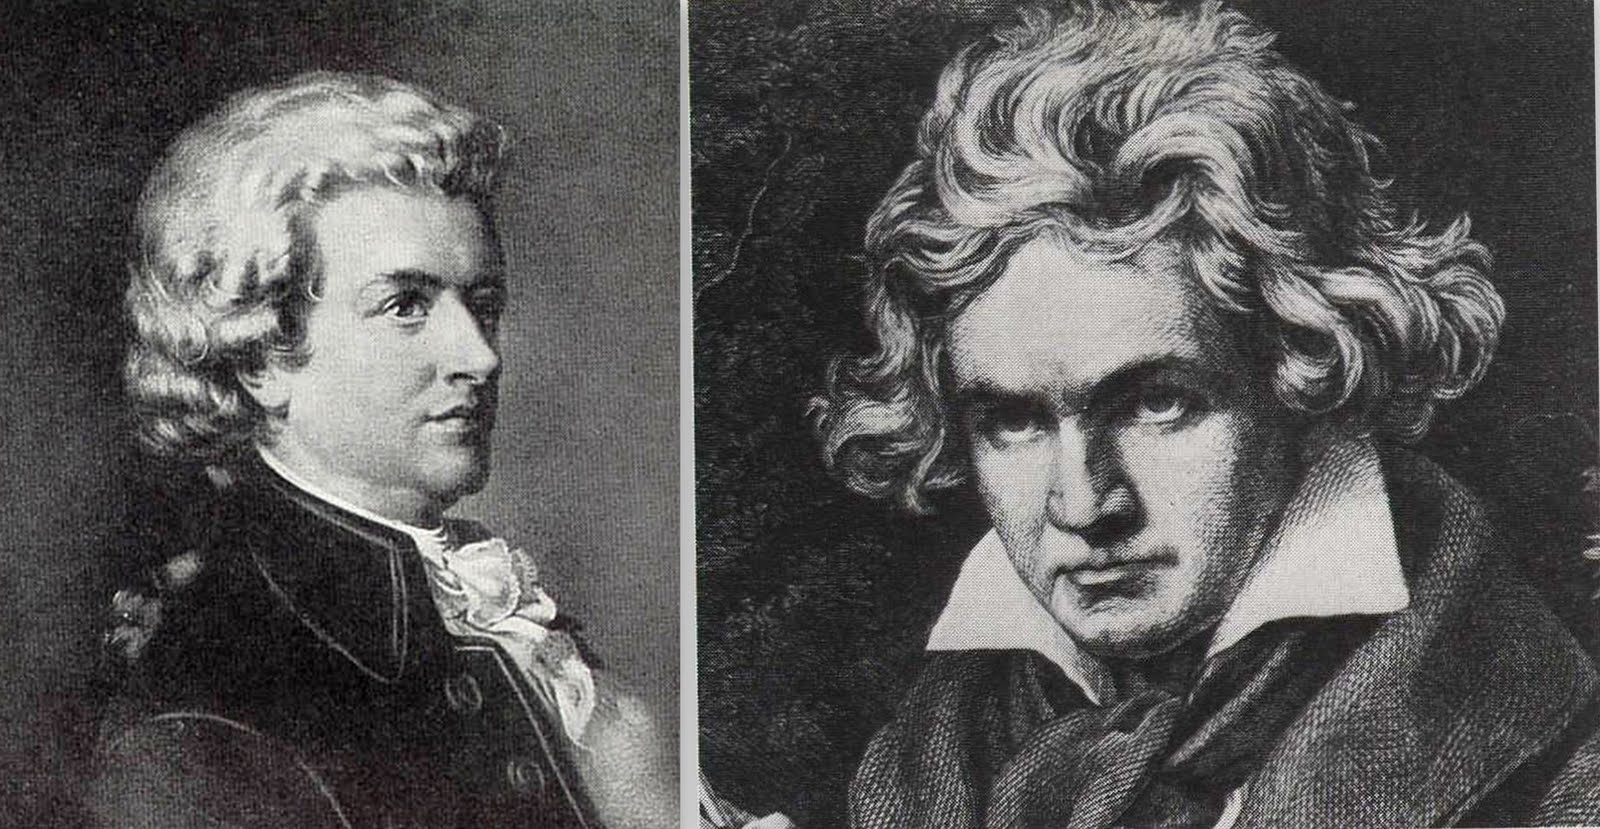 the life and works of wolfgang amadeus mozart and ludwig van beethoven Ludwig van beethoven (sixteen years younger than mozart) was greatly influenced by his work wolfgang amadeus mozart resource handout for classroom or homeschool: just $200 bbc: primary history: wolfgang amadeus mozart 5 stars.